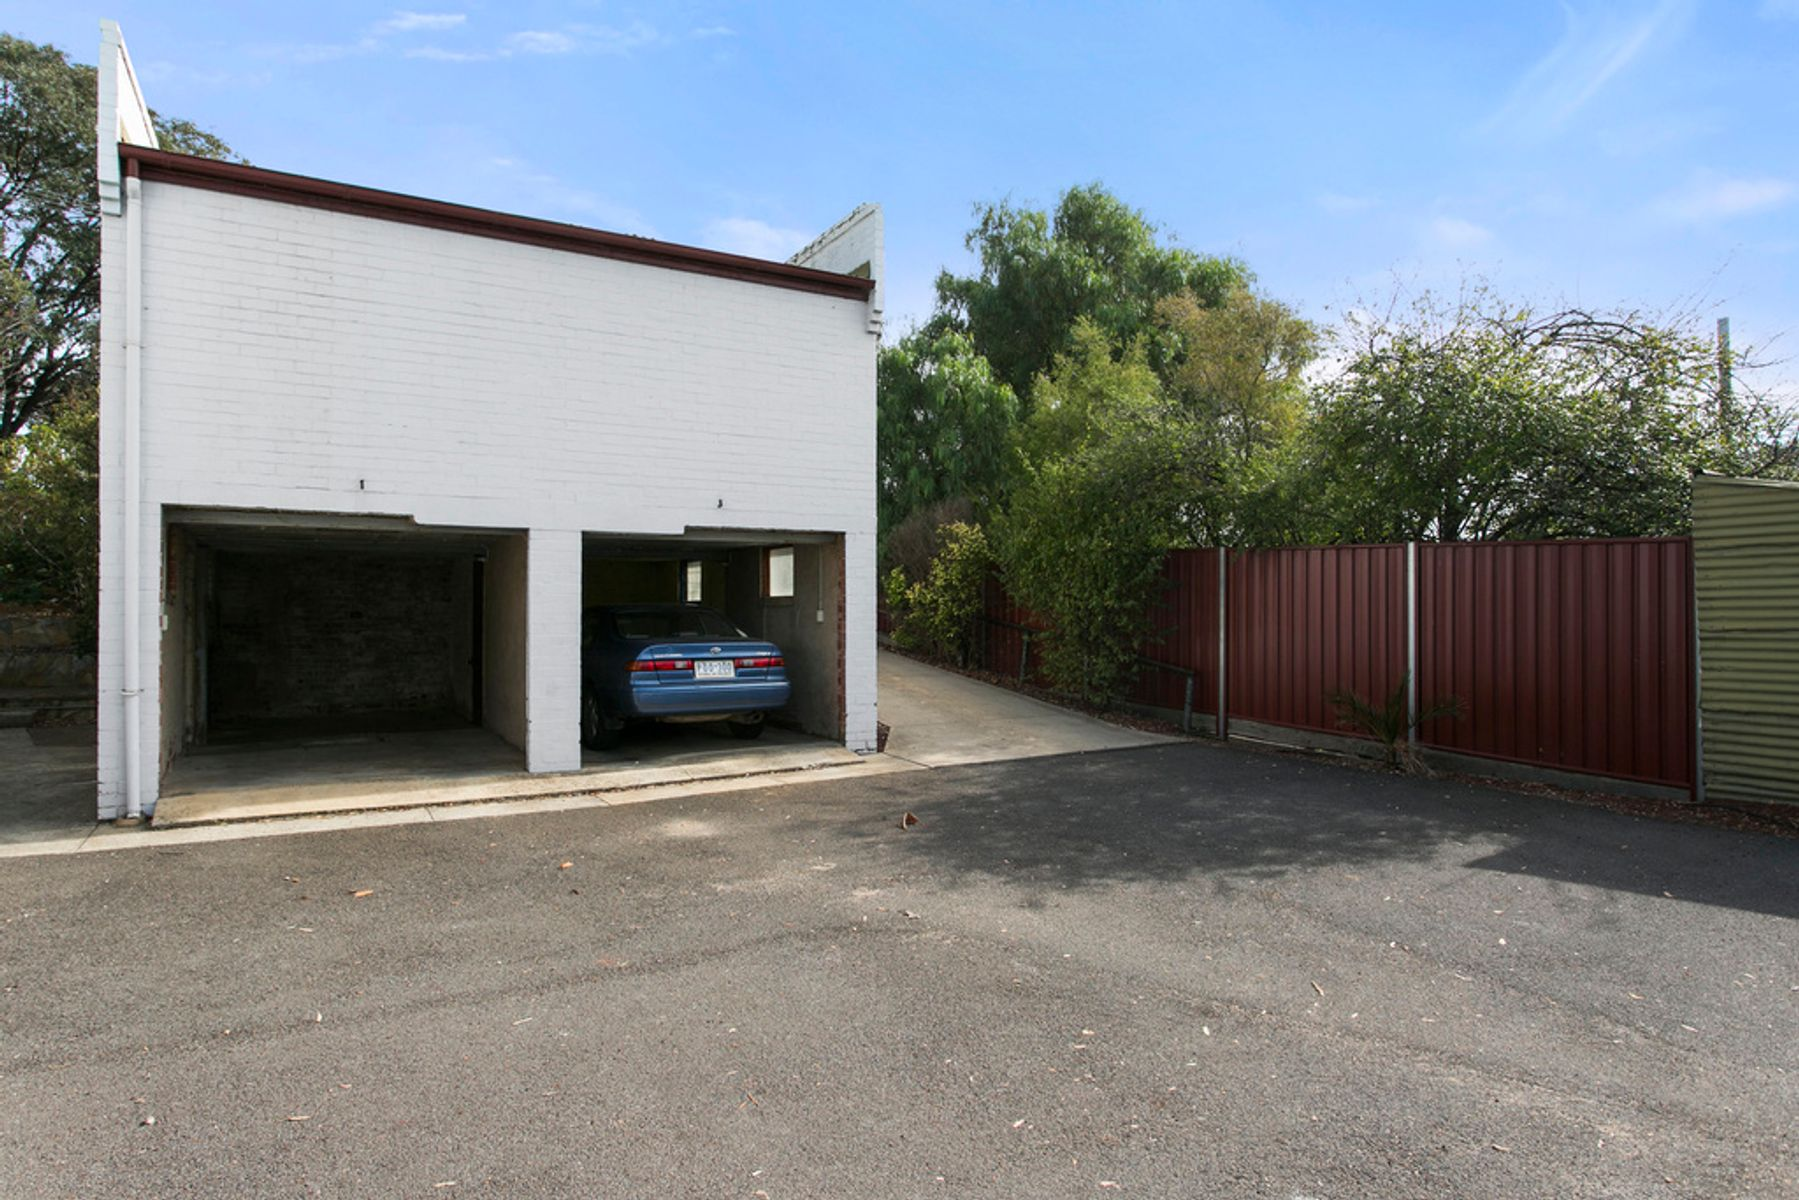 1/125 Mitchell Street, Bendigo, VIC 3550